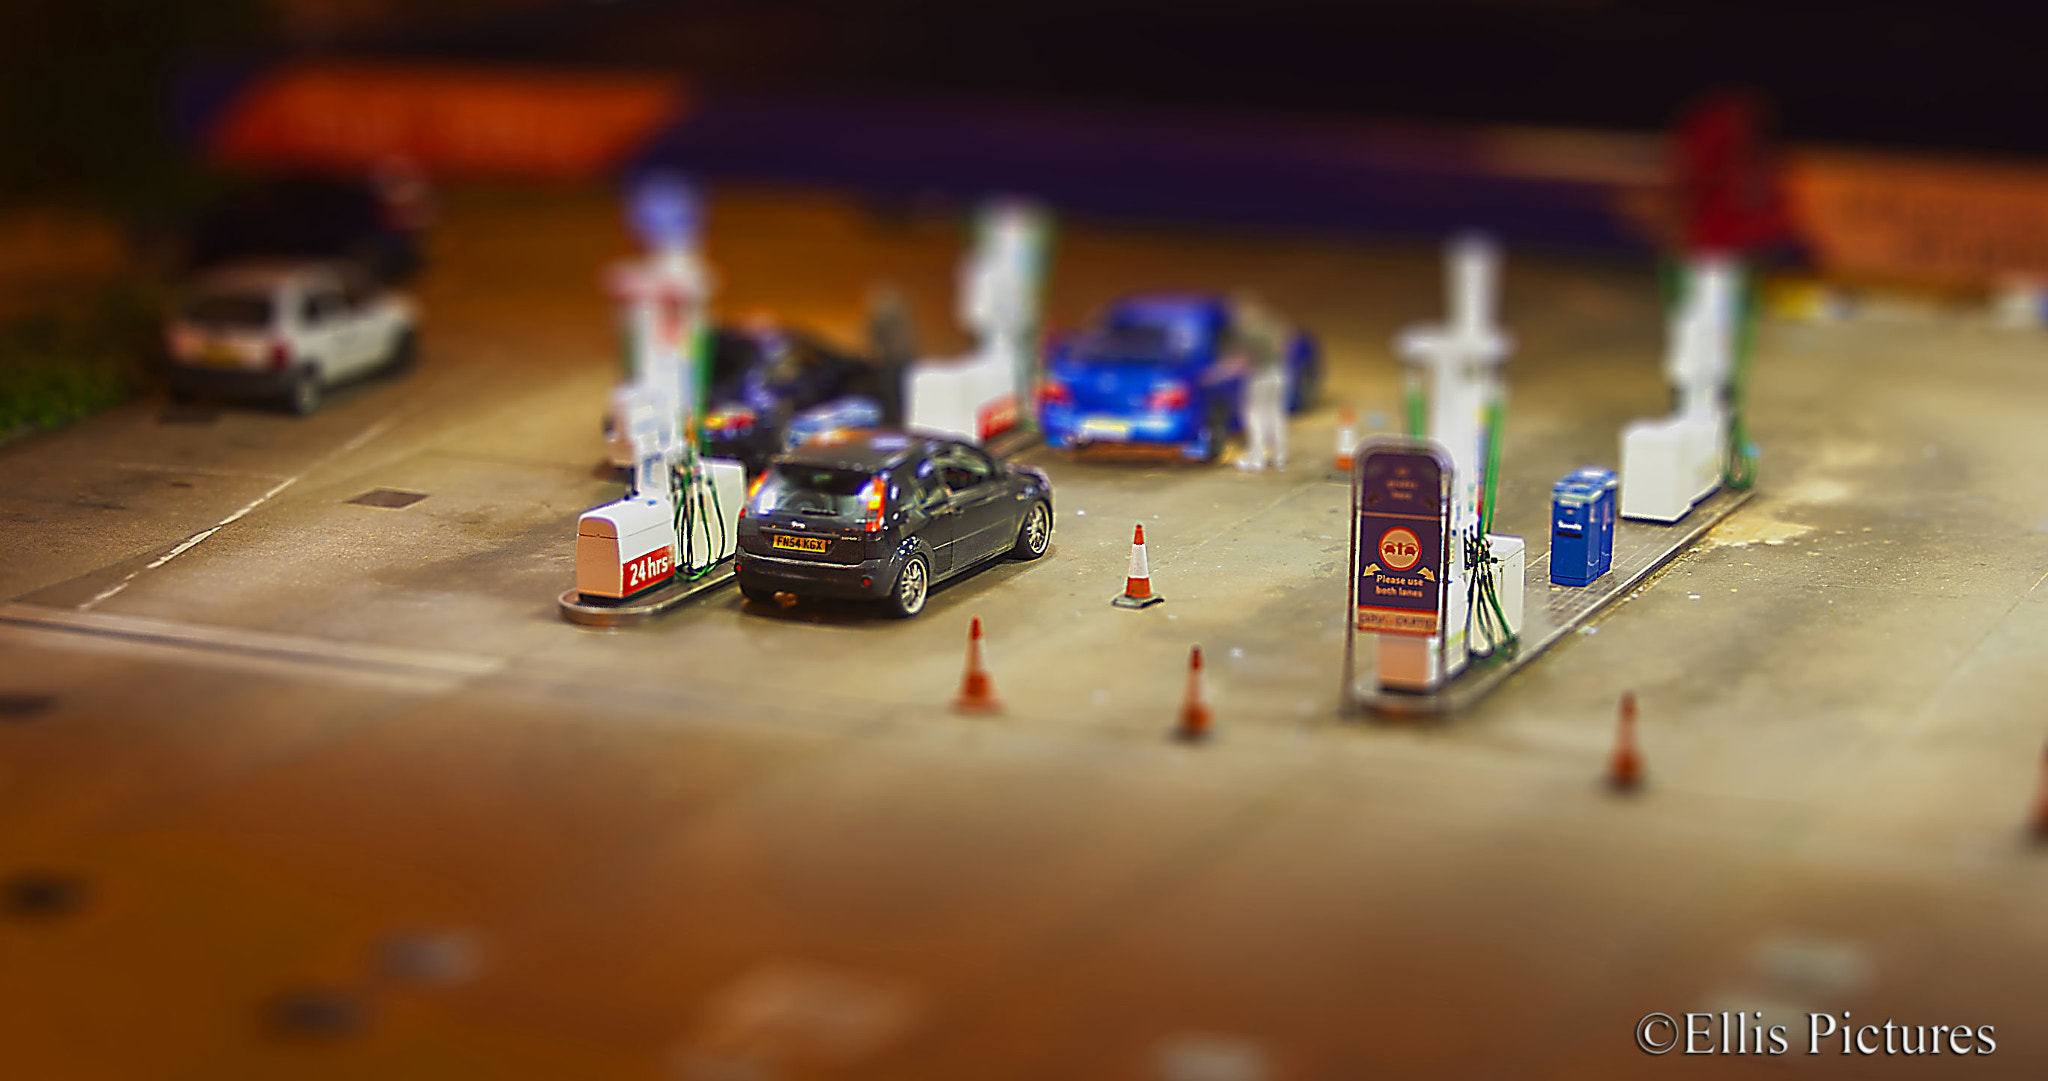 Photograph Toy Town Fuel Station by Steven Ellis on 500px